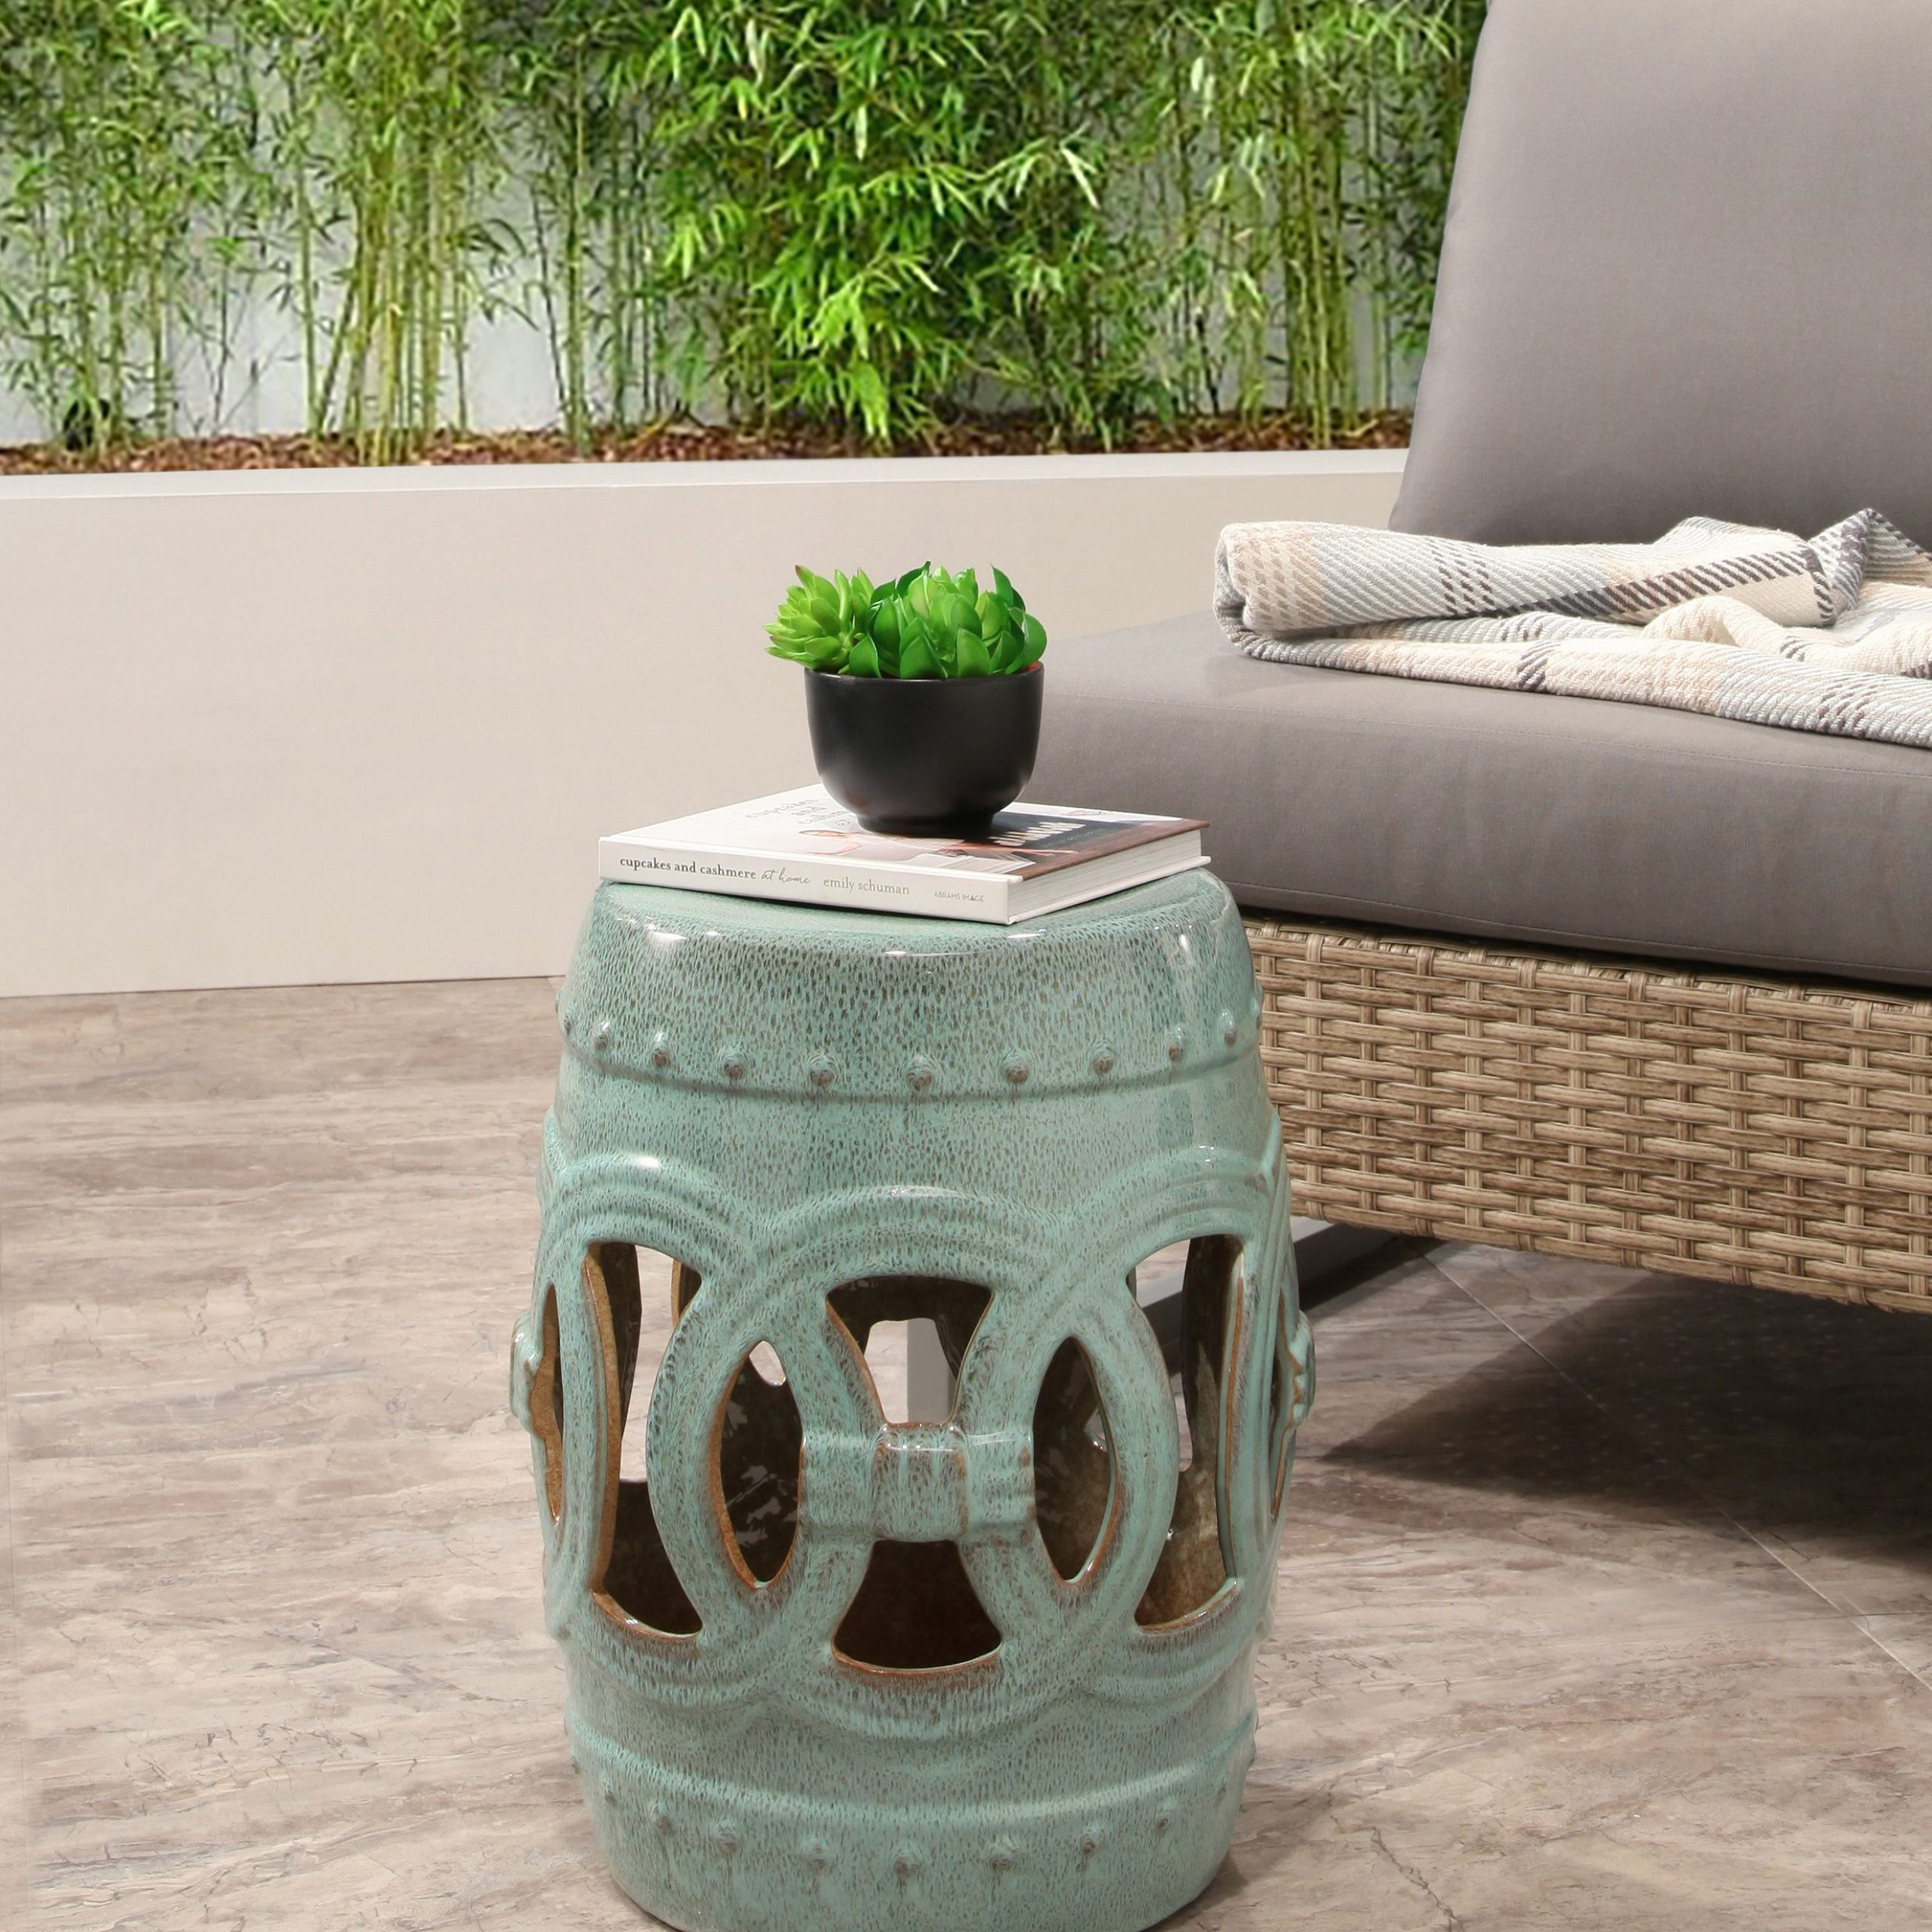 Devon And Claire Monaco Ceramic Garden Stool, Multiple Intended For Maci Tropical Birds Garden Stools (View 14 of 25)